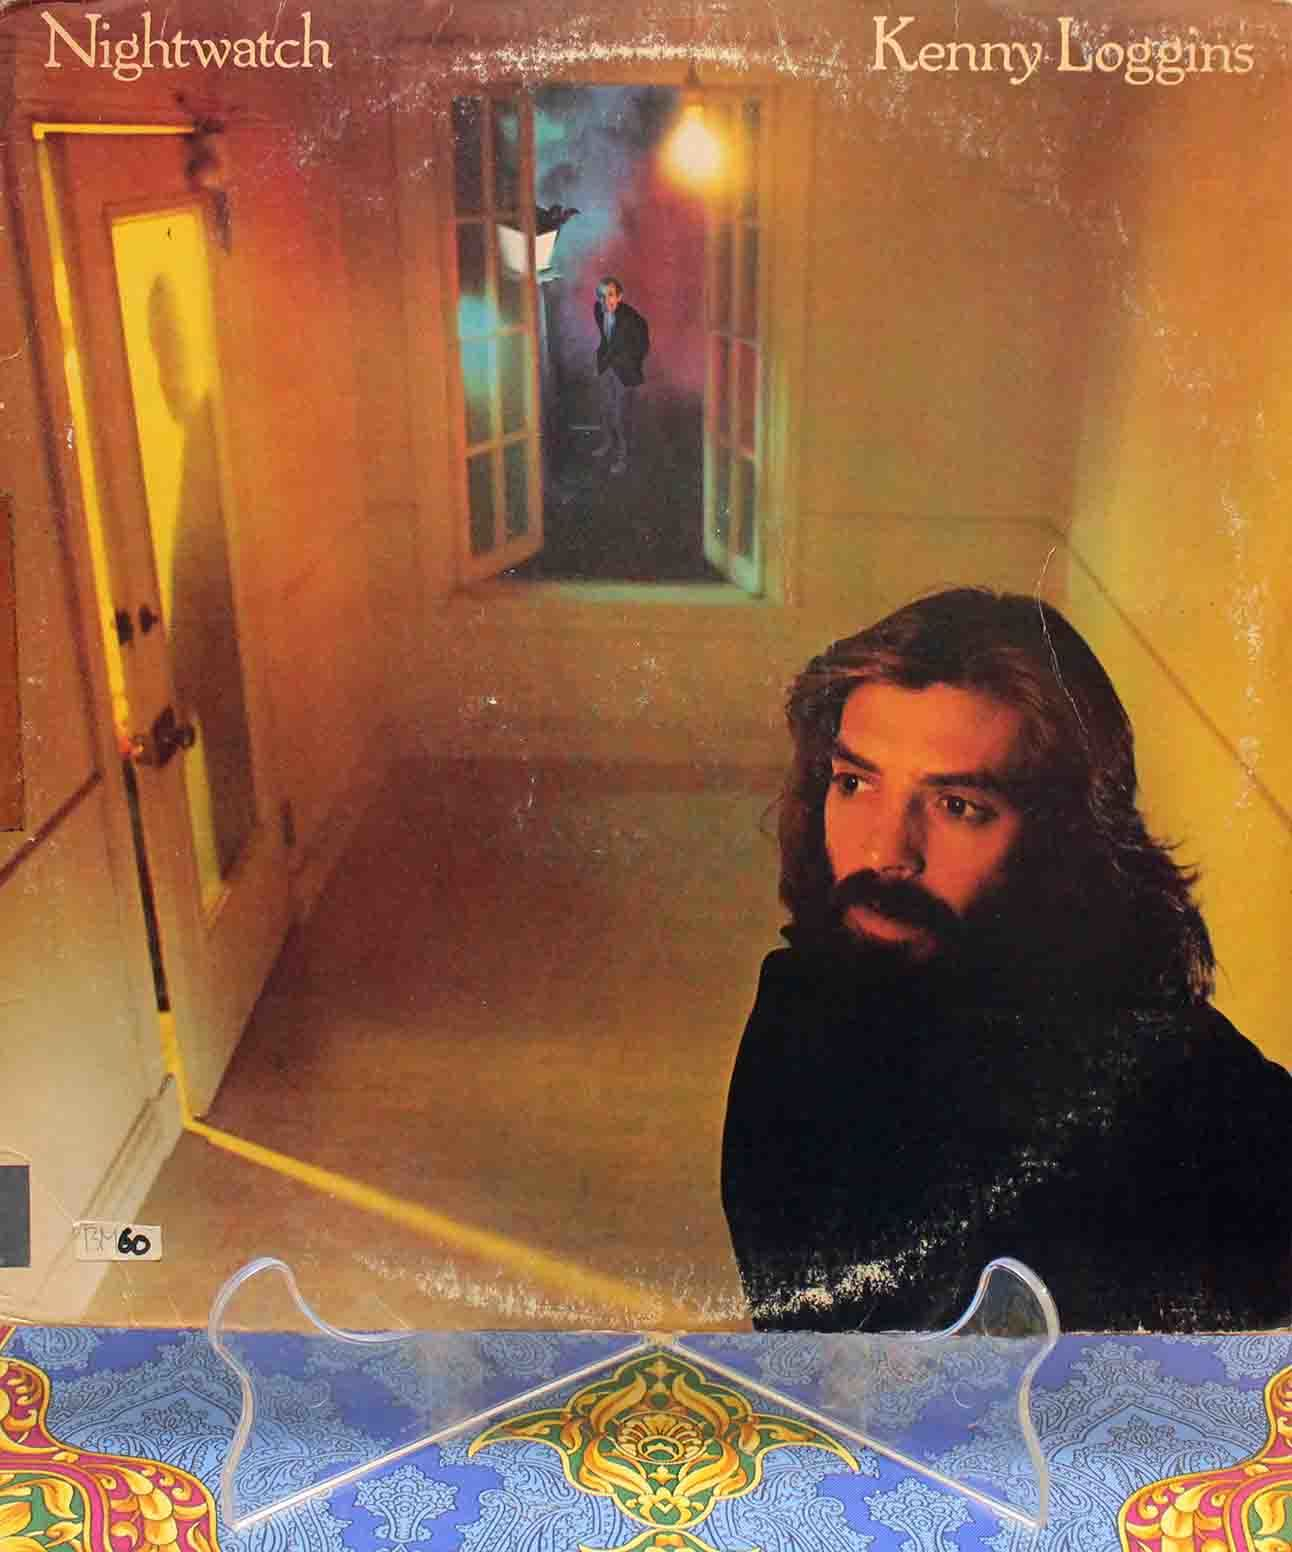 kenny loggins nightwatch 01